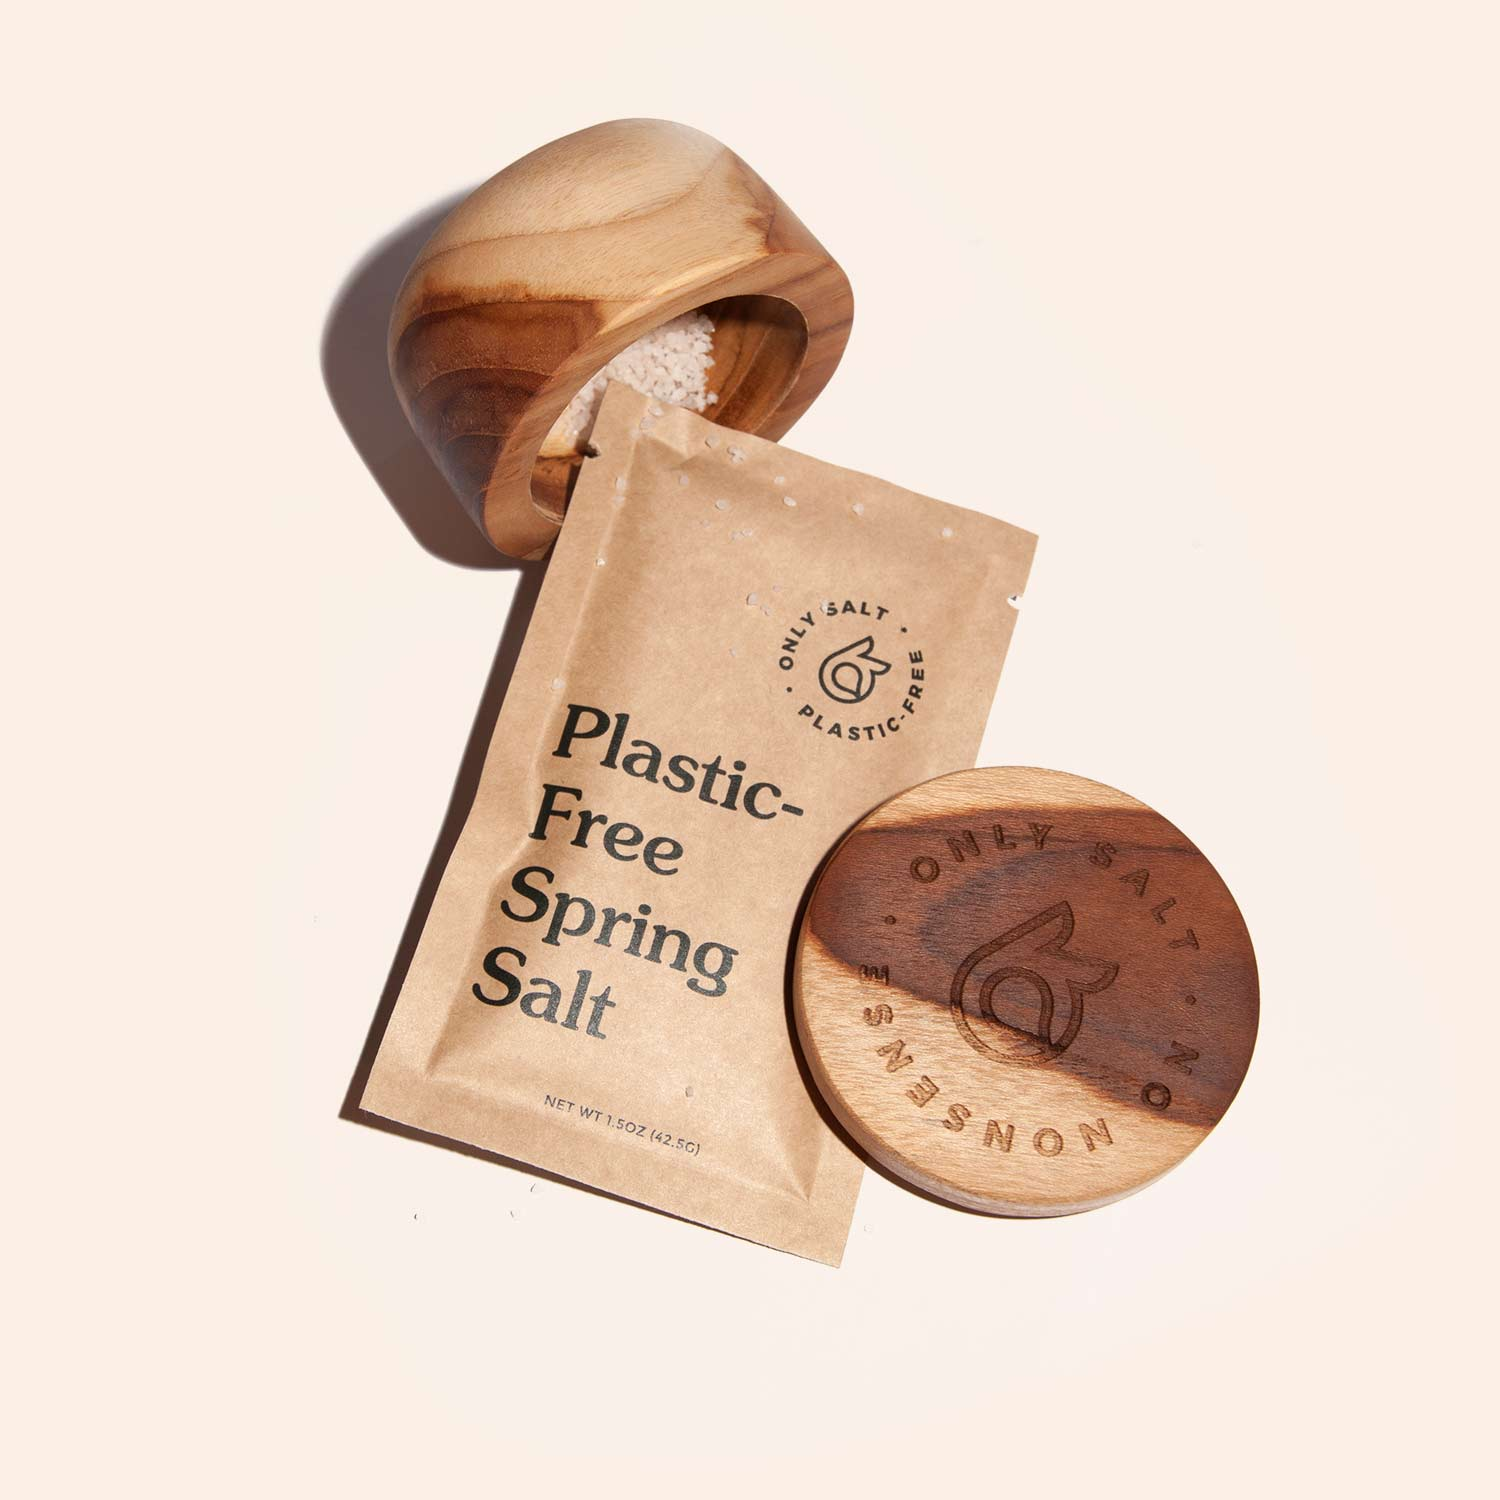 Spring salt packet by Only Salt with a wooden pinch bowl.